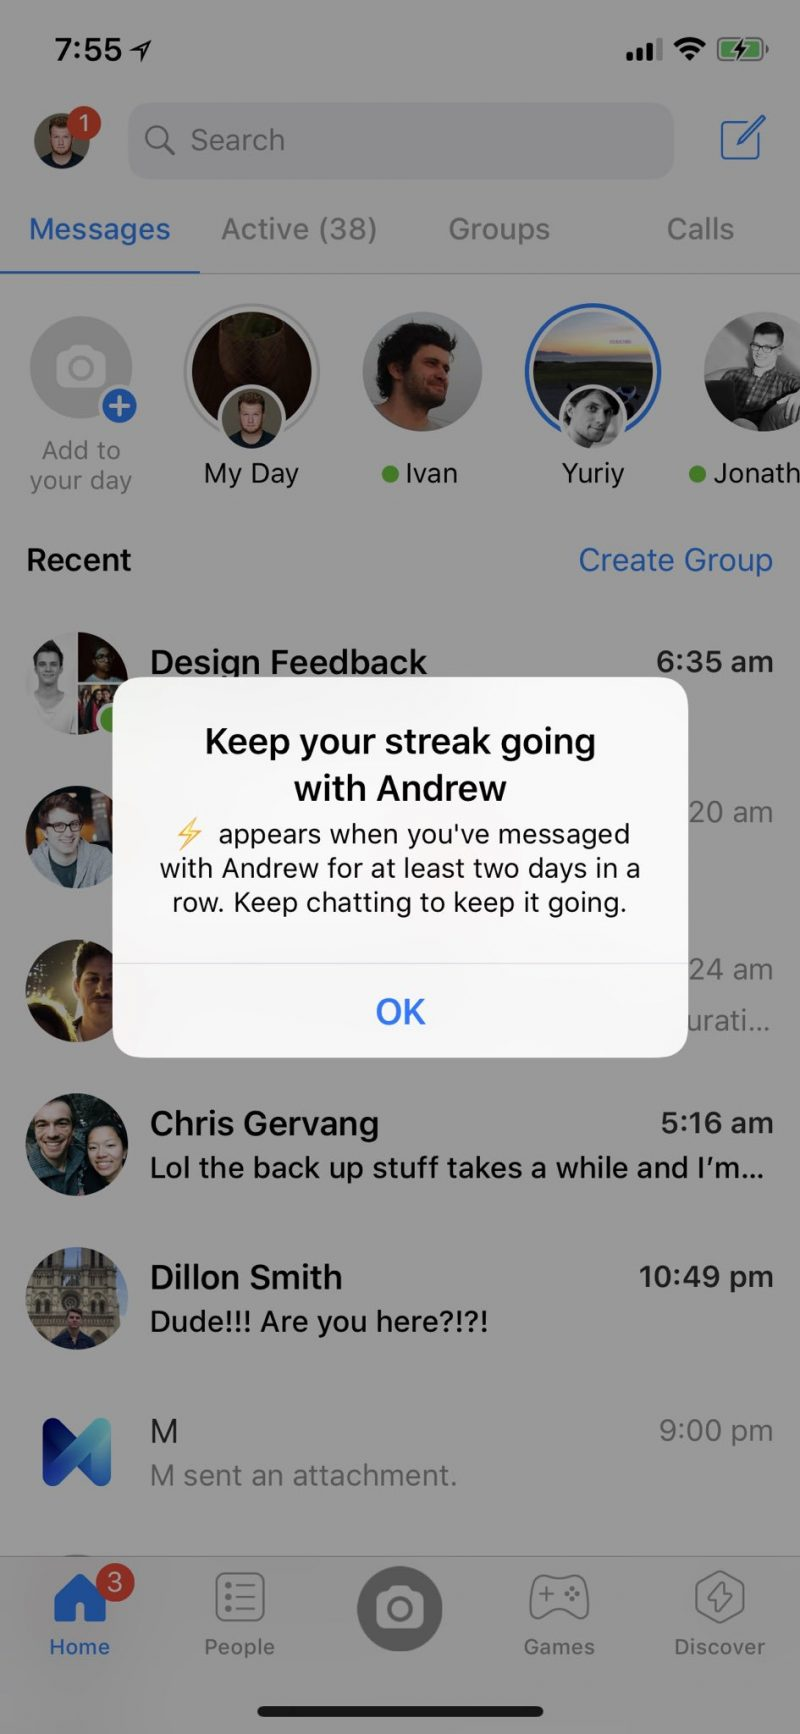 Facebook Tests Yet Another Snapchat-Like Feature With